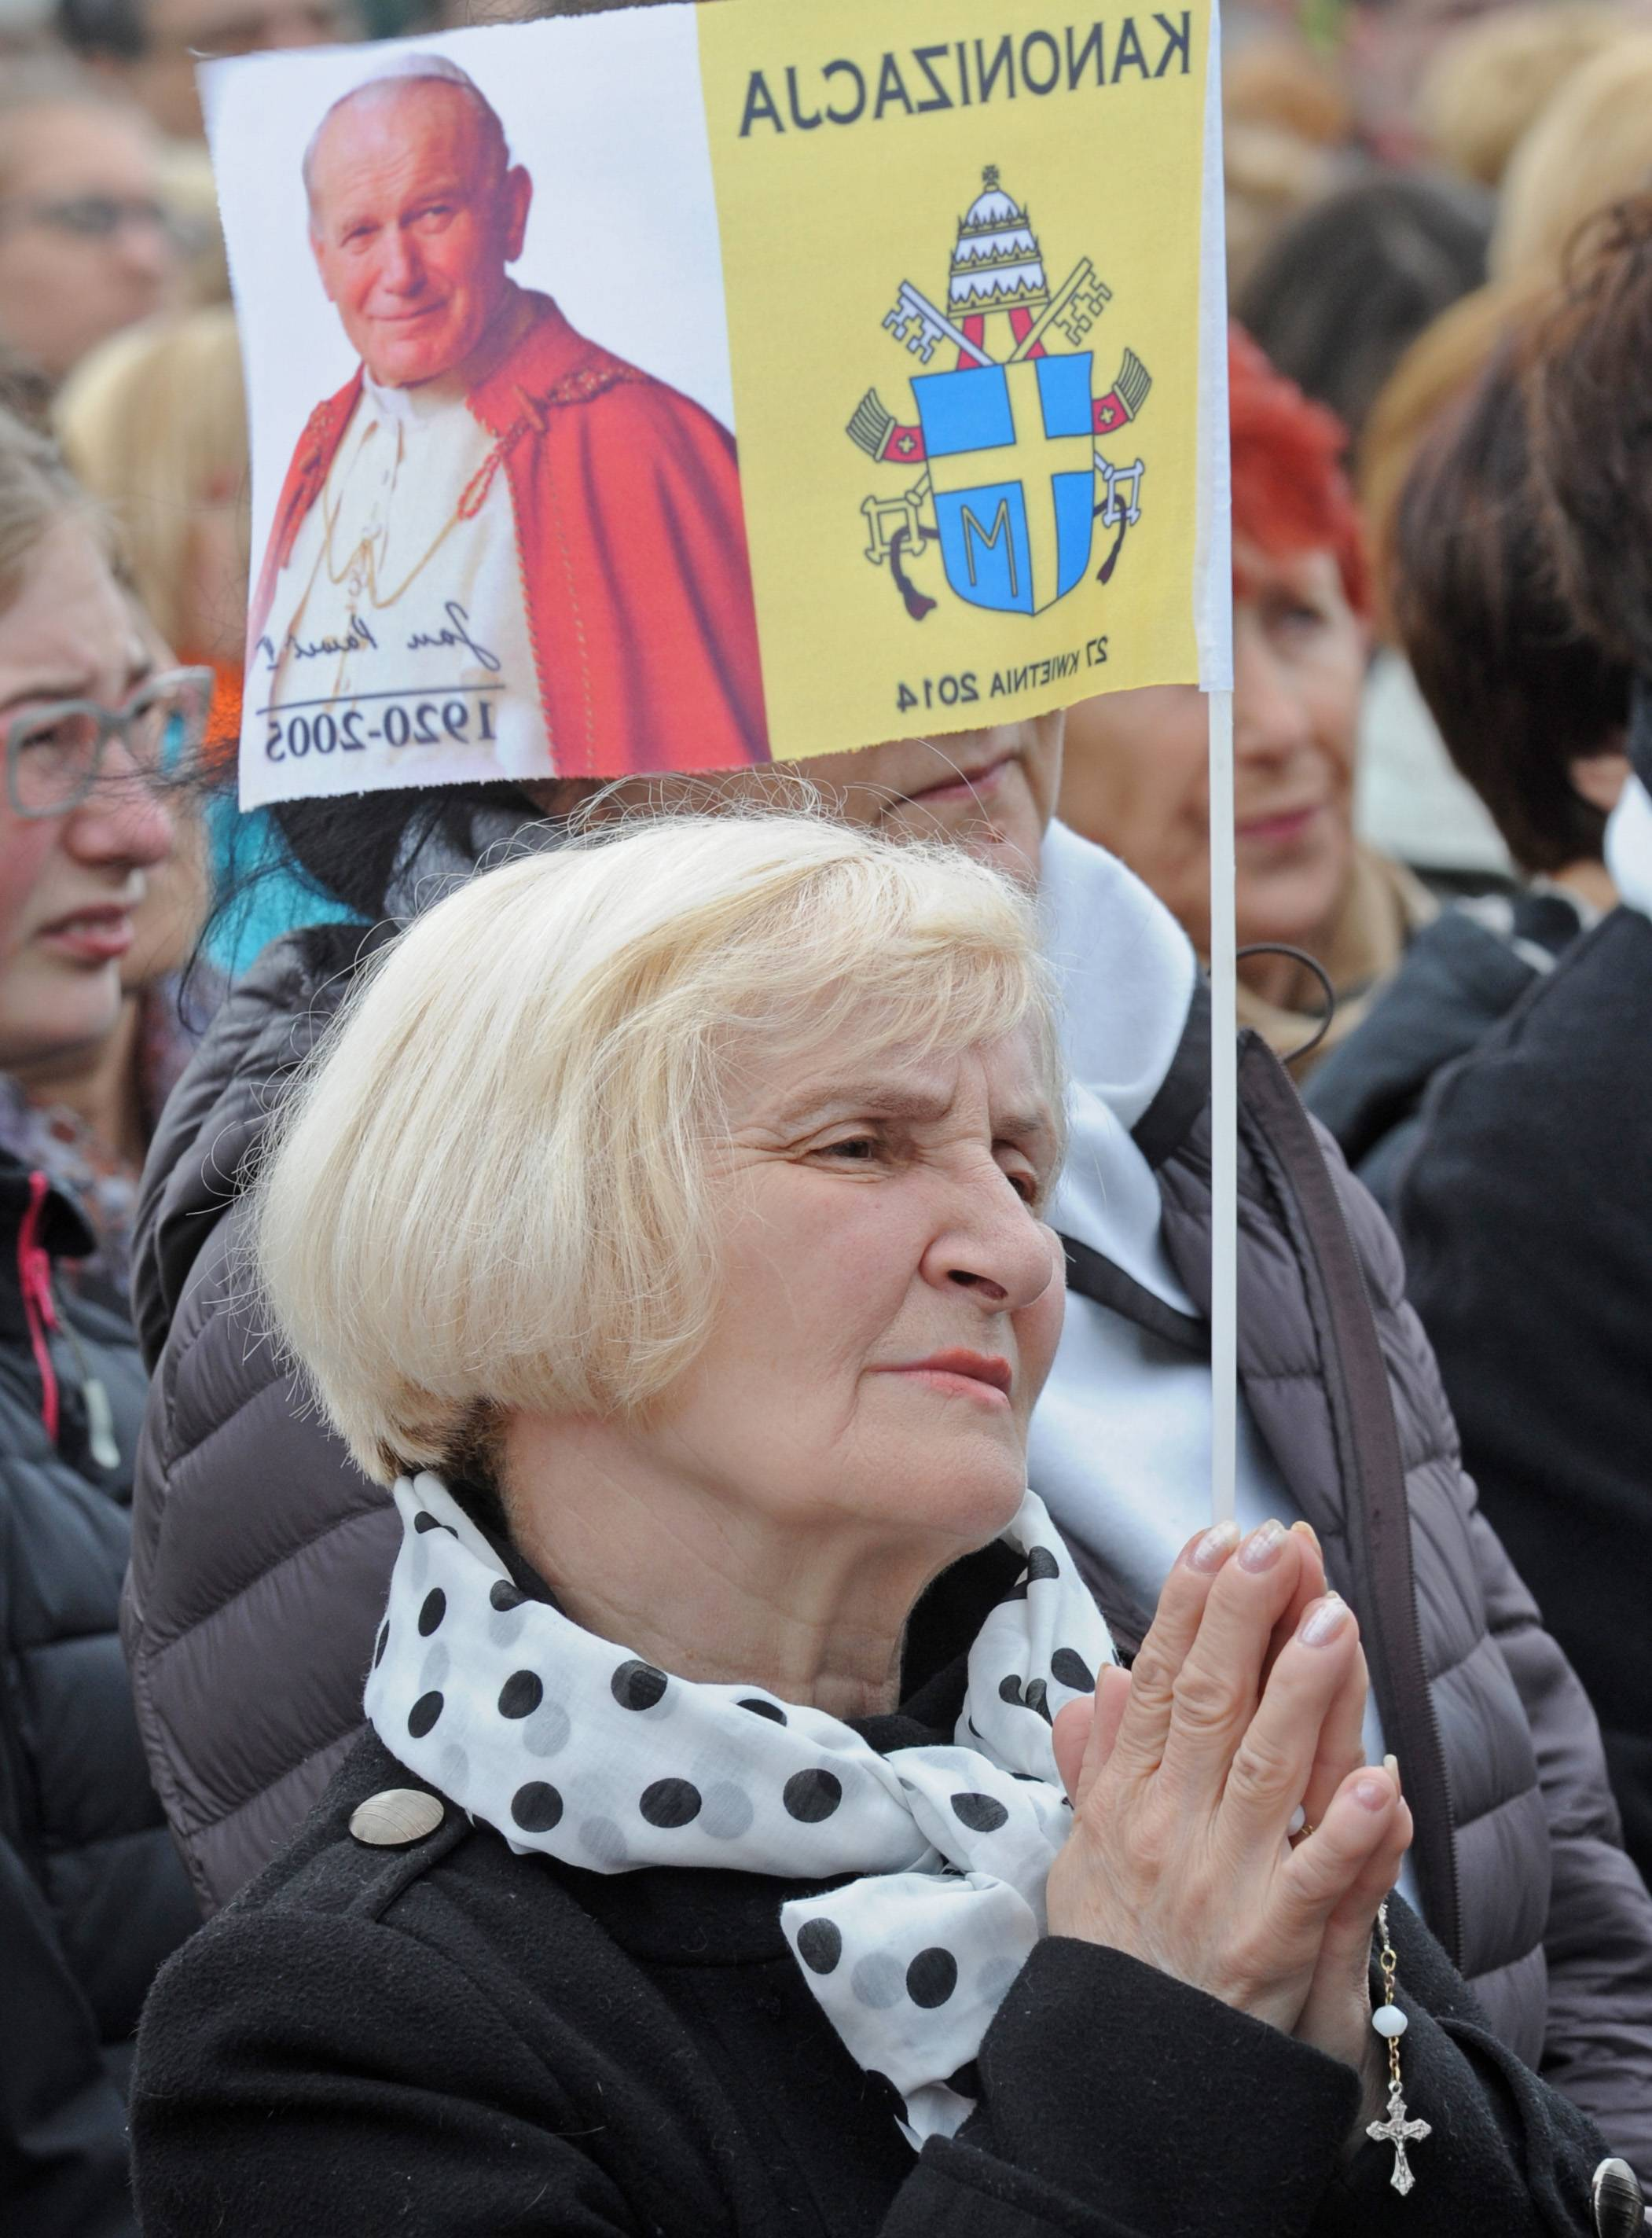 A woman prays during a public live viewing of the canonization mass from the Vatican in Warsaw, Poland, Sunday. Several thousands of faithful watched the live transmission as Pope Francis, aided by emeritus Pope Benedict XVI declared John Paul II and John XXIII saints, in an unprecedented ceremony involving four popes.